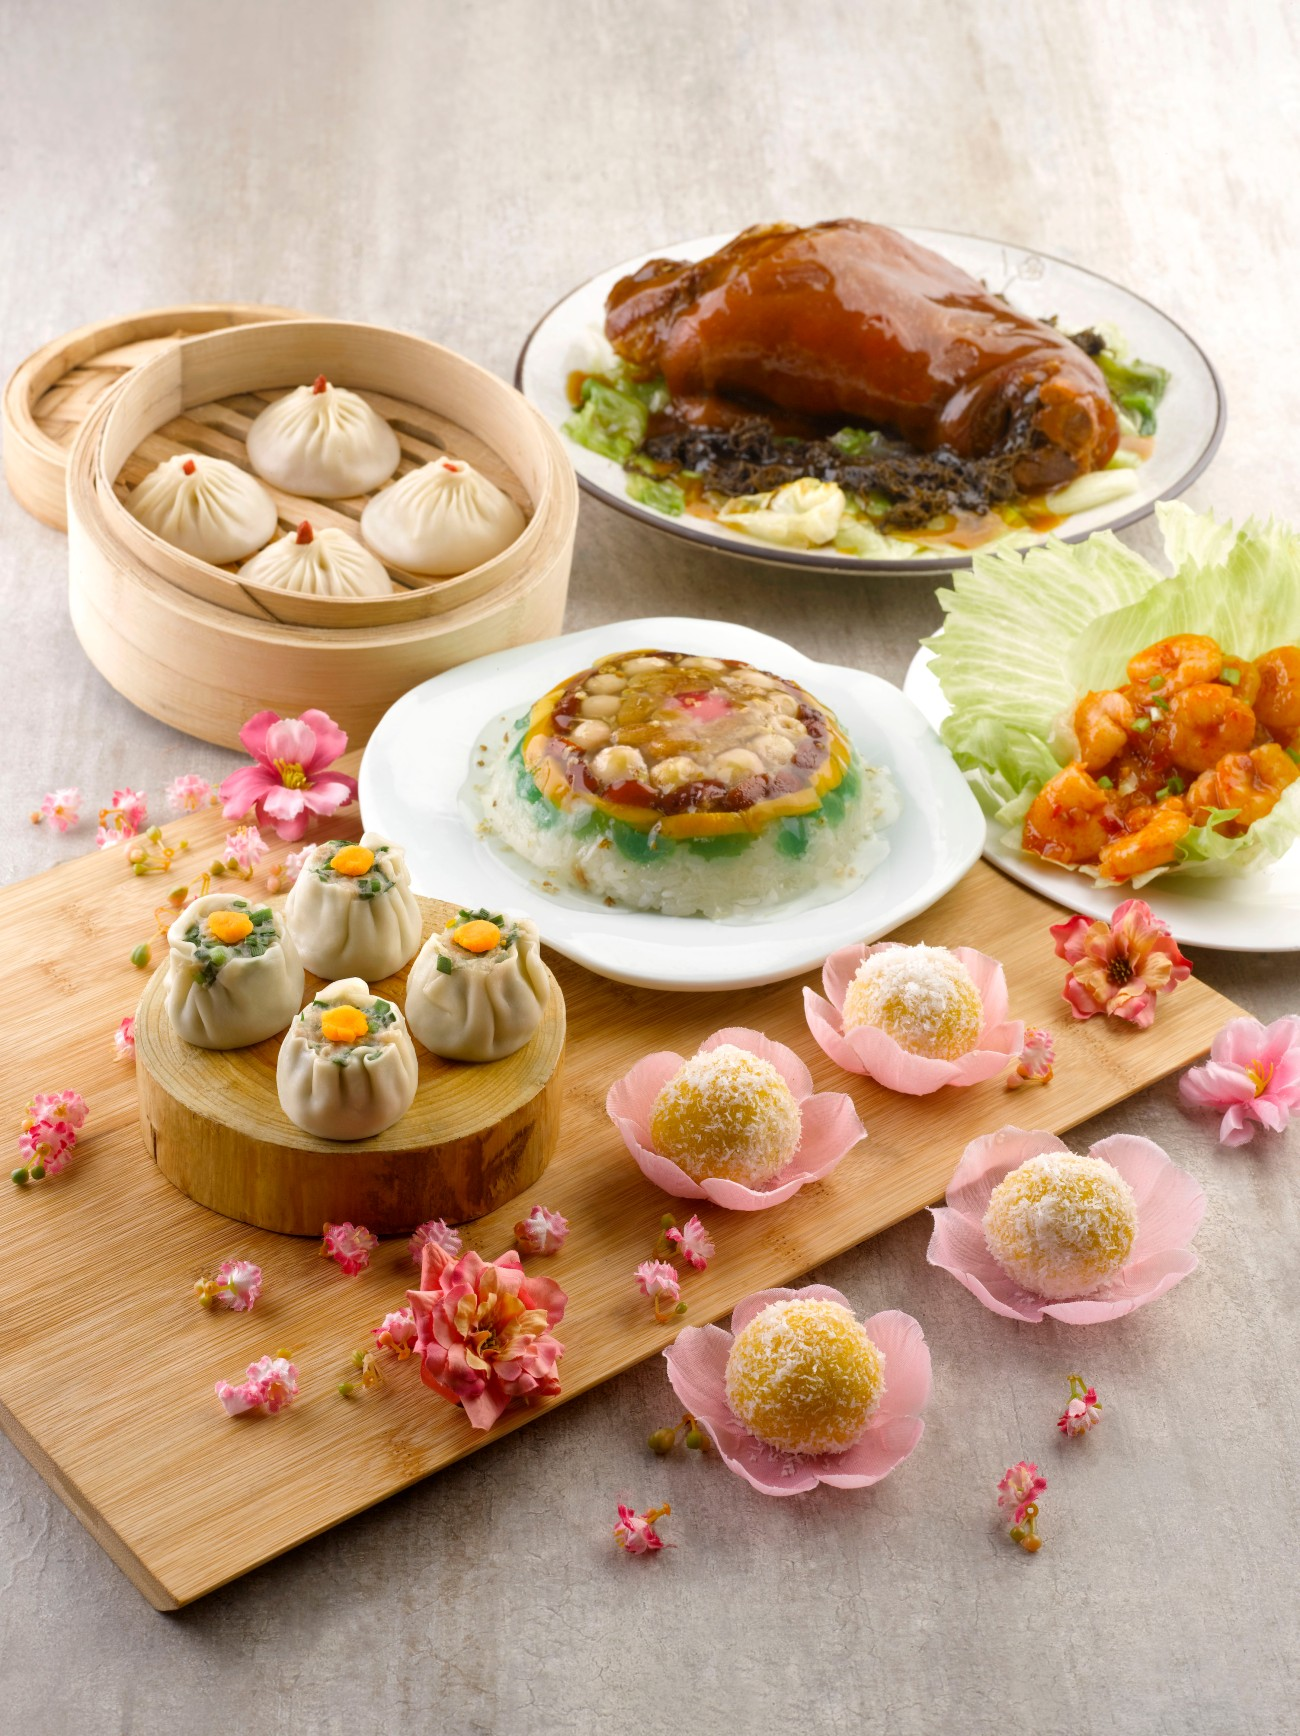 Crystal Jade CNY 2016 - La Mian Xiao Long Bao specialty dishes